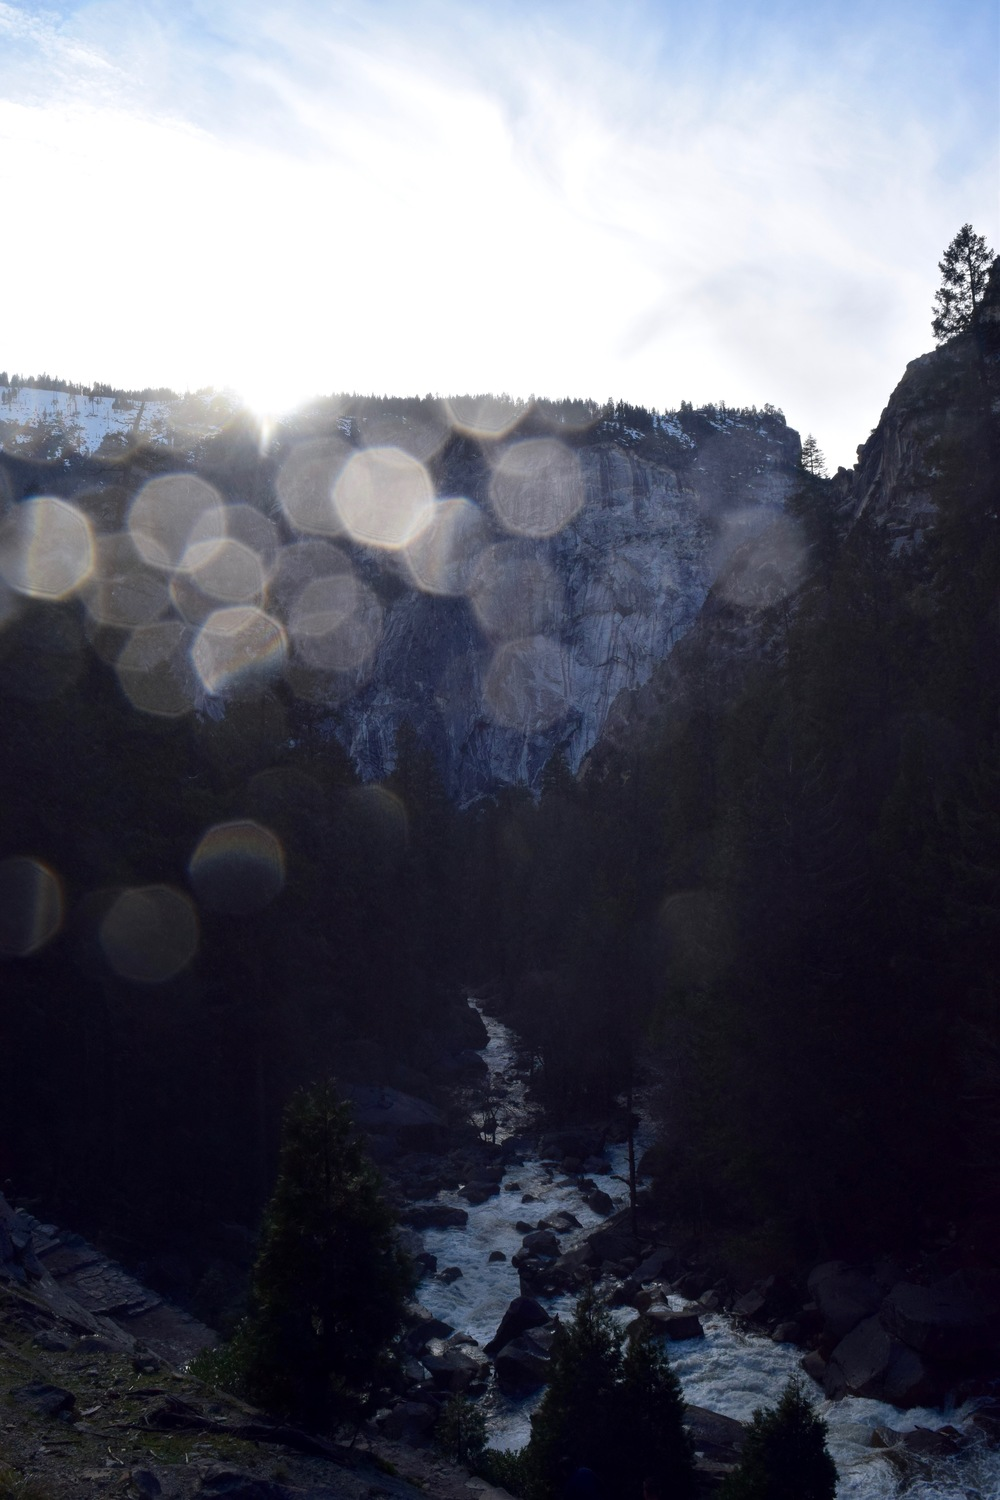 So much spray from the waterfall - the second I took my lens cap off, it would get sprayed and turn everything into bokeh